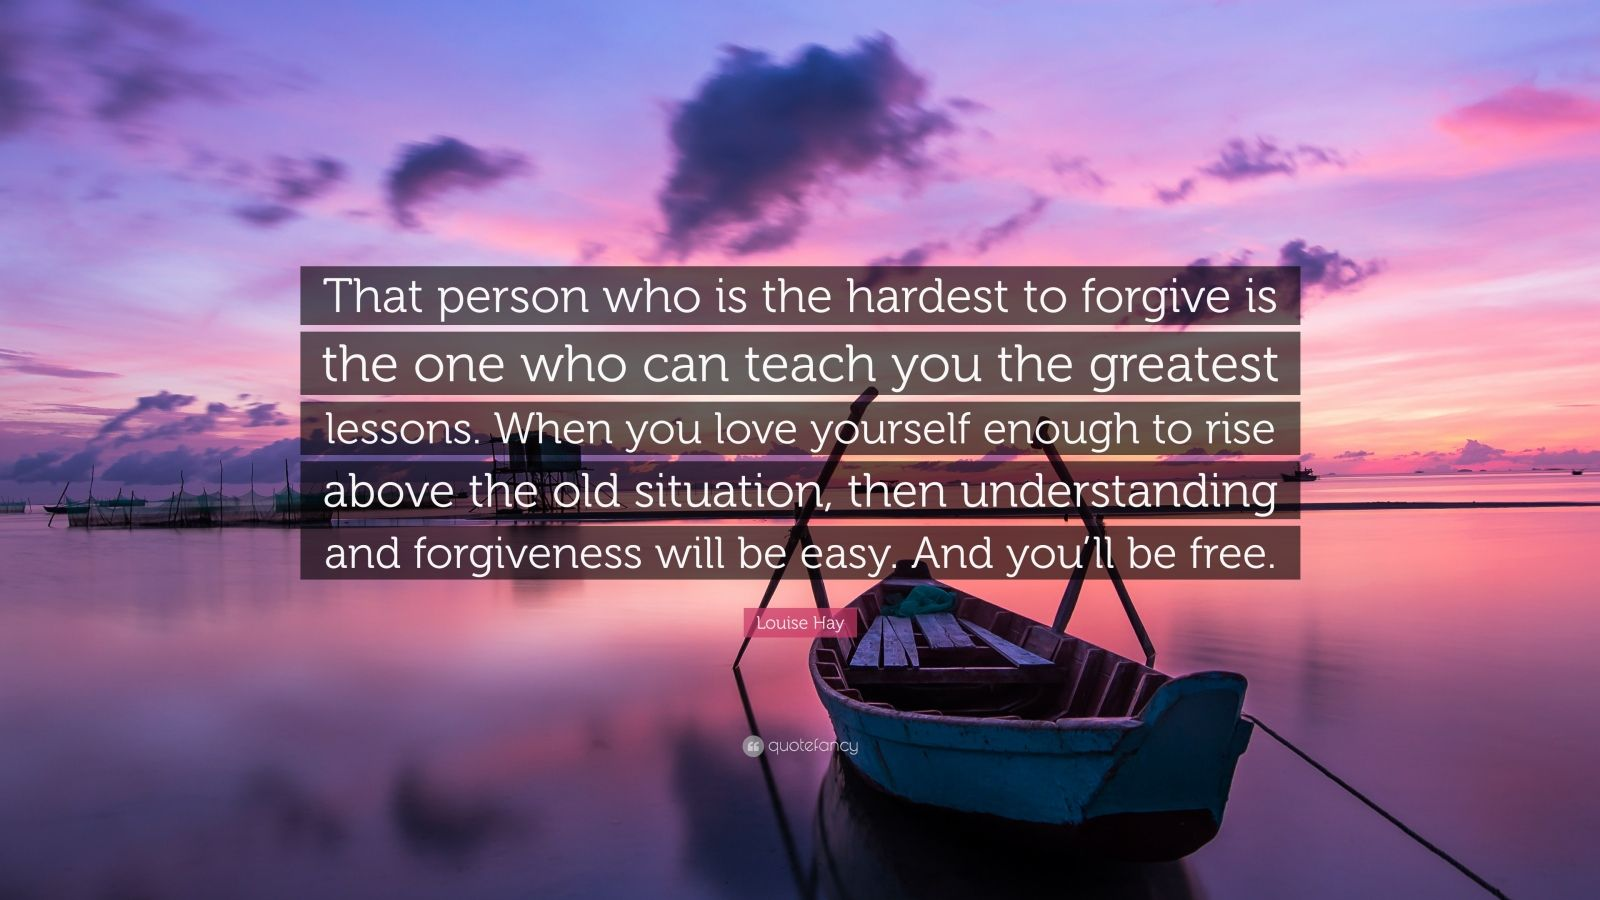 """Louise Hay Quote: """"That person who is the hardest to forgive is the one who can teach you the greatest lessons. When you love yourself enough to rise above the old situation, then understanding and forgiveness will be easy. And you'll be free."""""""